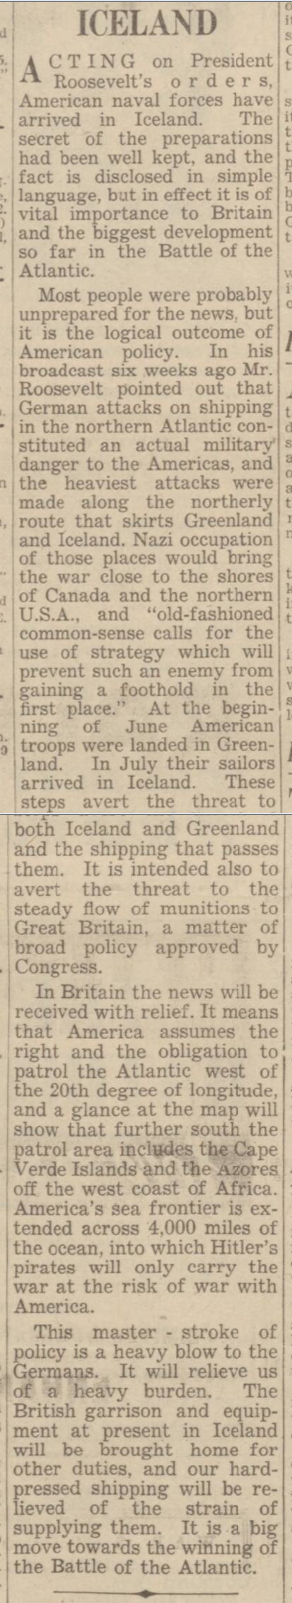 historical newspaper report about the us occupation of iceland in 1941